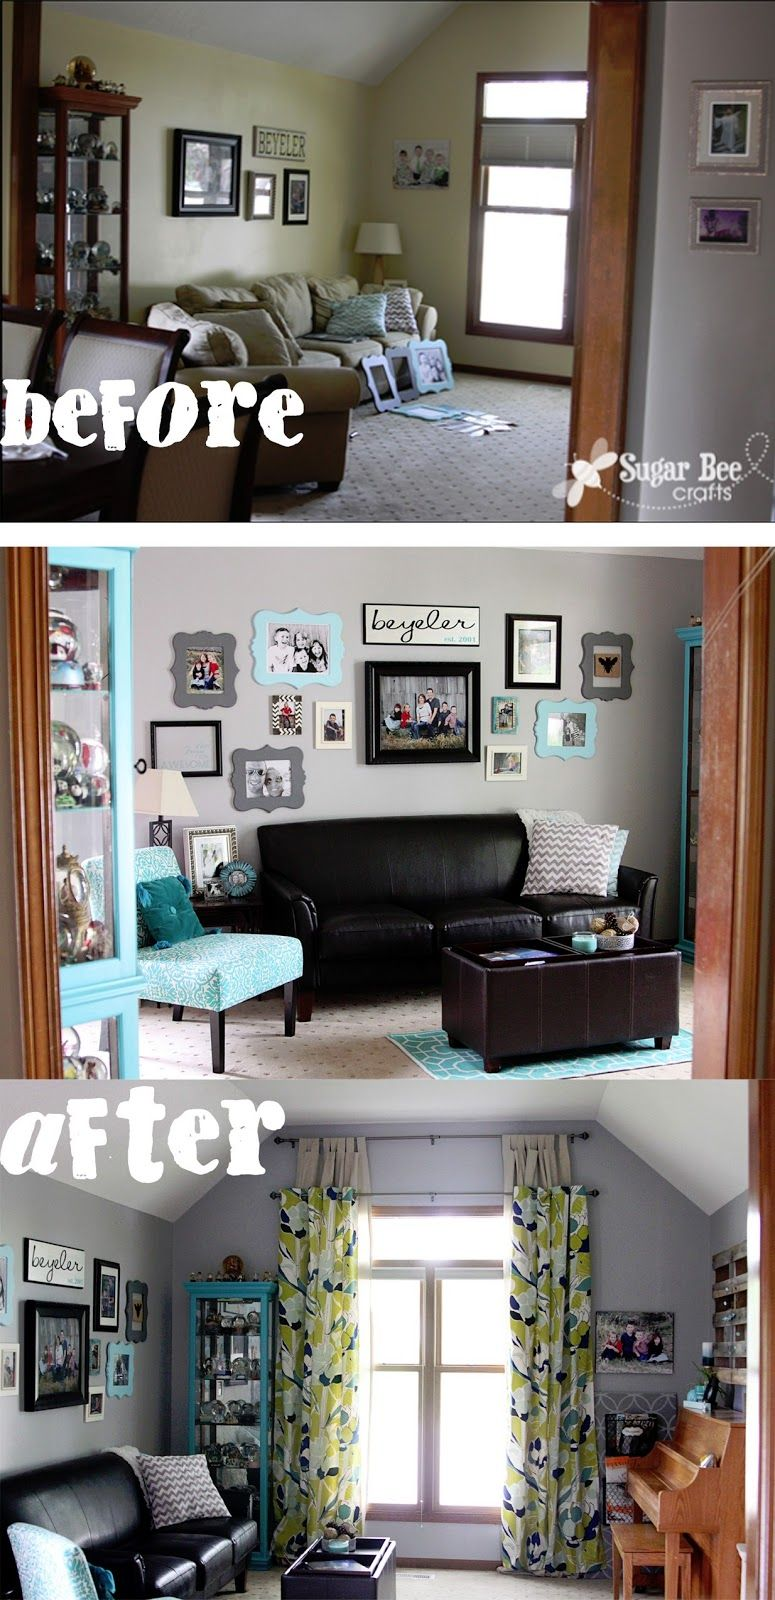 eclectic crafts room. Living Room Revamp - Aqua (turquoise) And Gray -Sugar Bee Crafts. Eclectic Crafts